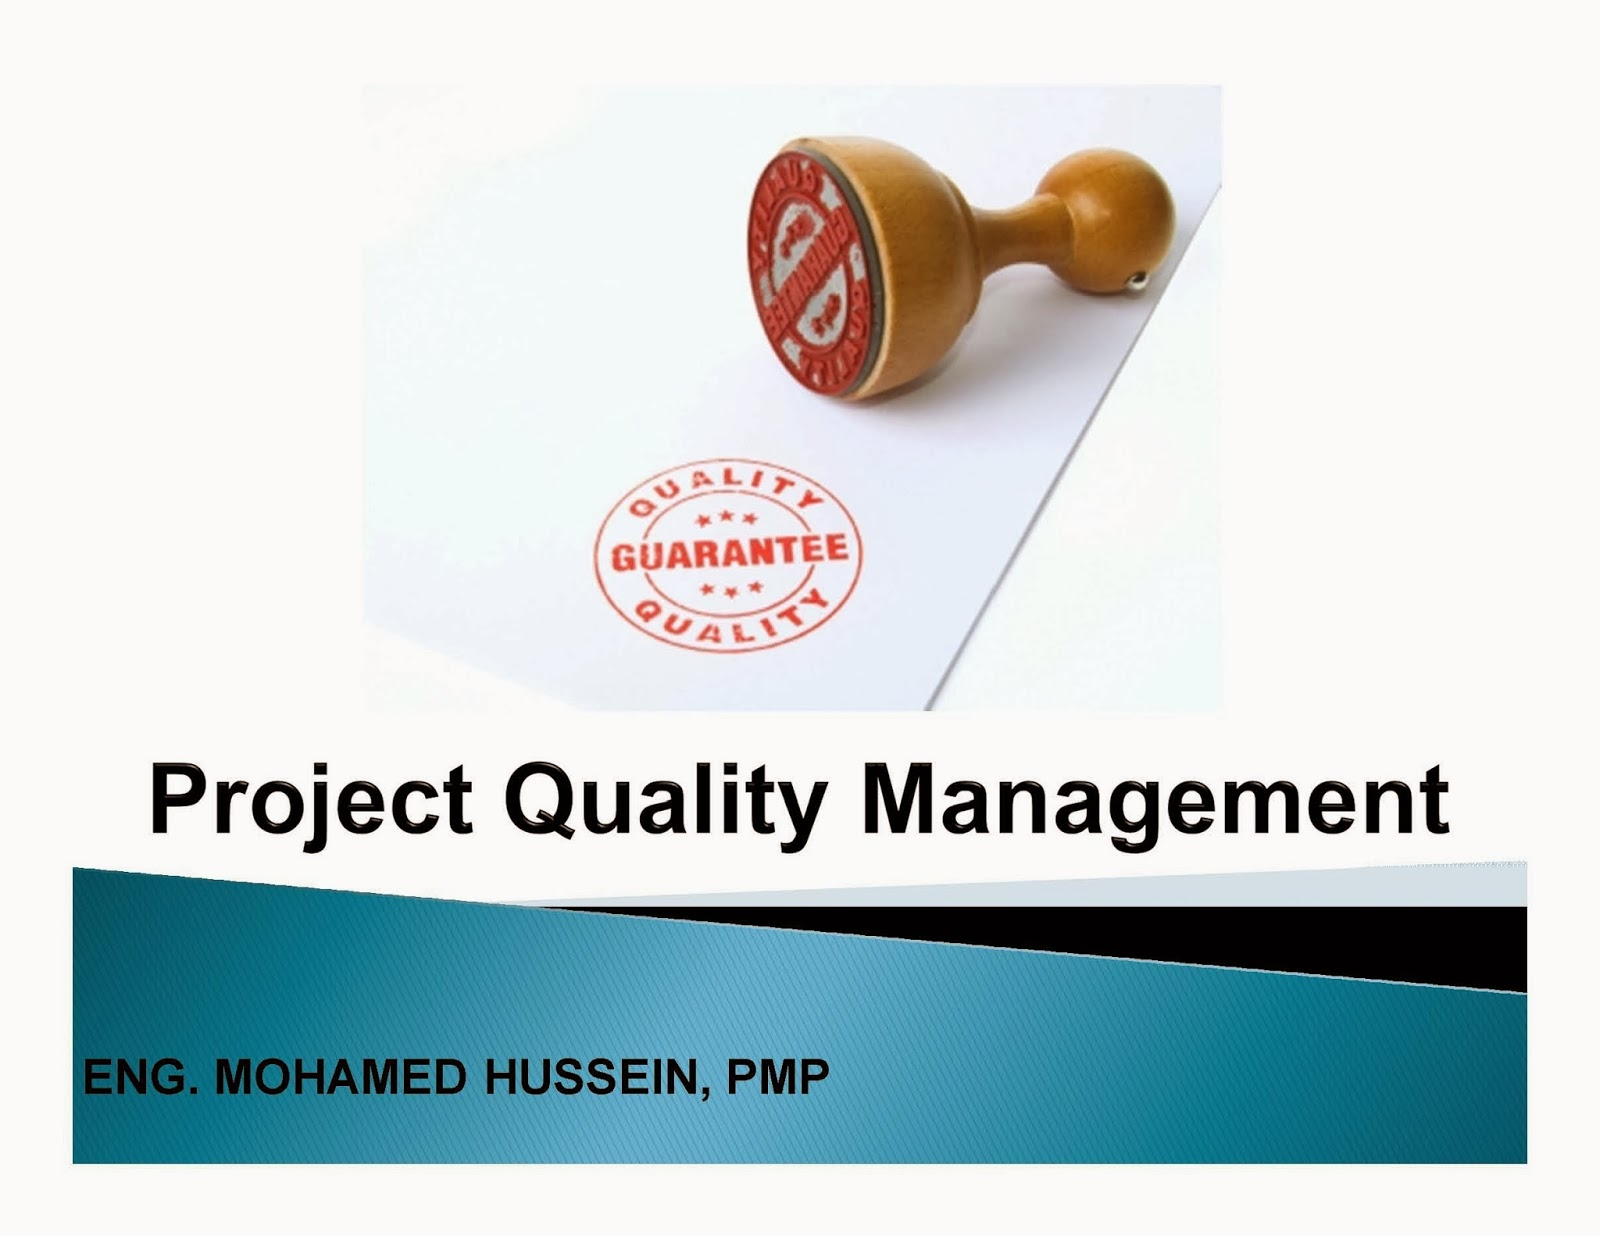 assignment quality management Video created by rice university for the course engineering project management: risk, quality, teams, and procurement 2000+ courses from schools like stanford and.